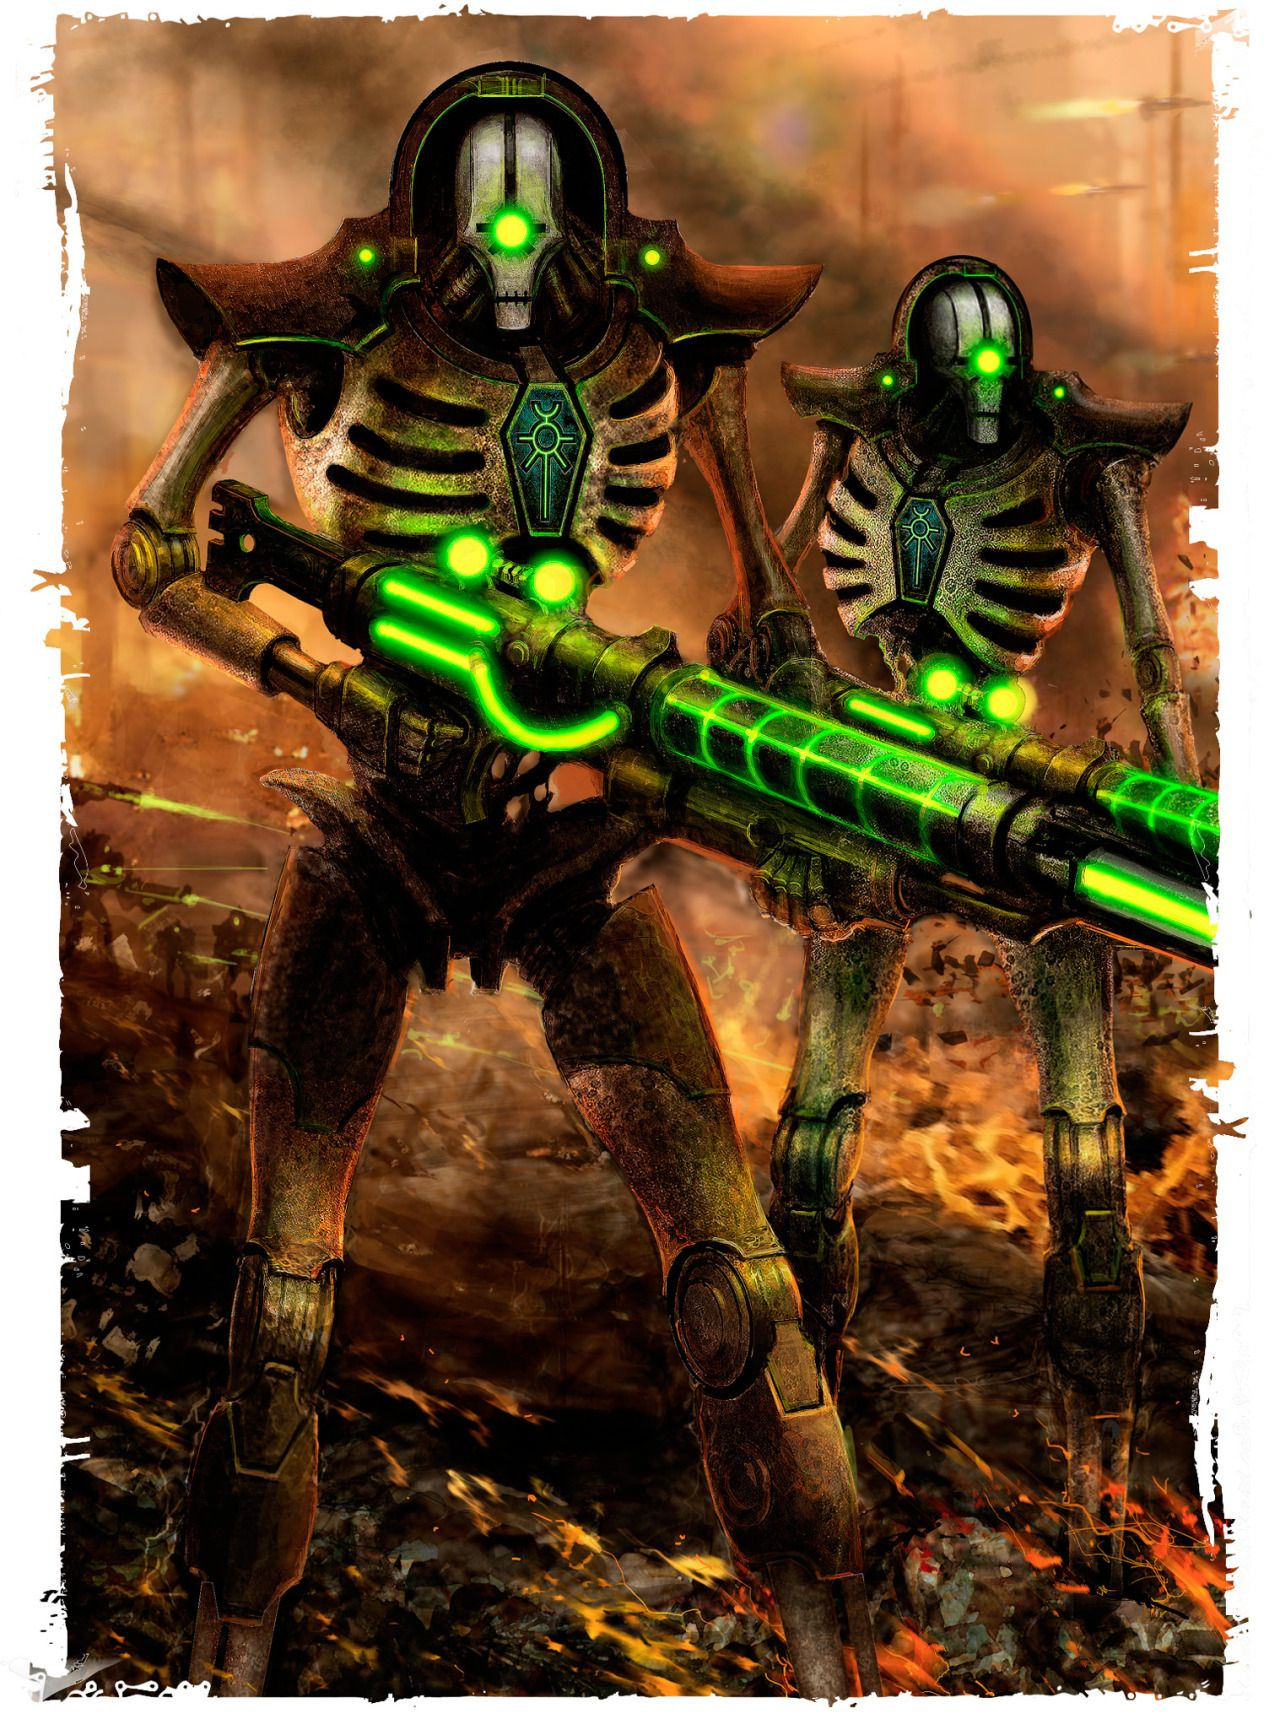 "Necron Deathmarks are the highly-skilled snipers and assassins of the Necron forces, appearing from apparently nowhere and striking with terrible precision. The name is fitting: once given the ""hunter's mark"", a Deathmark's targets are almost certain to meet their deaths scant moments later. Like most Necrons, the Deathmarks' technology lies far beyond the realm of human comprehension and they can effectively phase in and out of normal space-time at will."